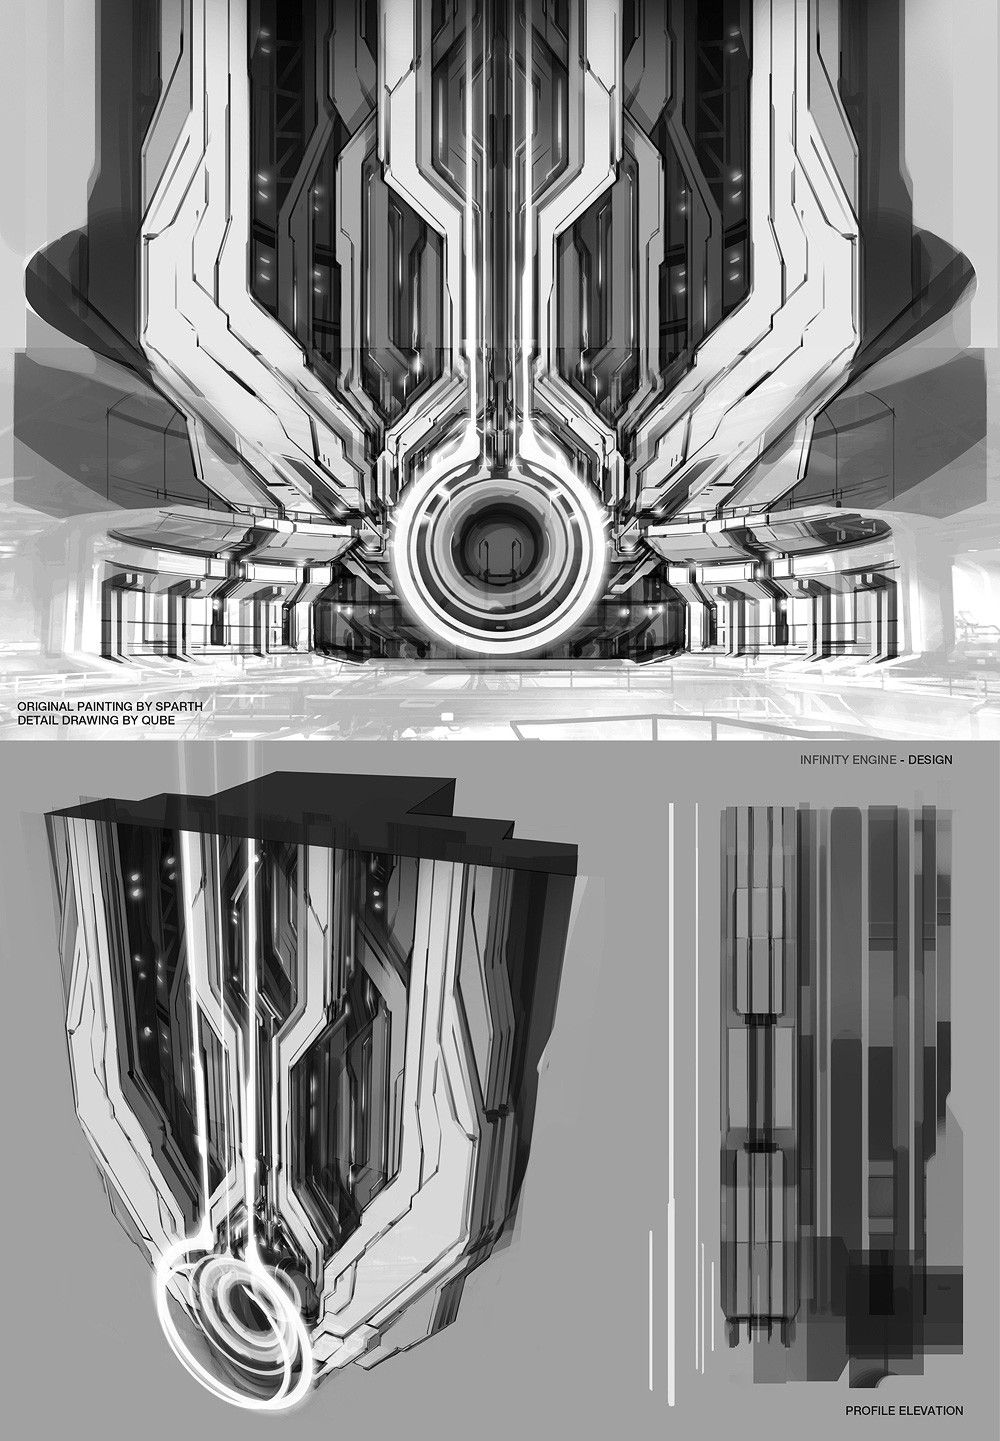 Spaceship Engine Room: UNSC Infinity Engine / Engine Room